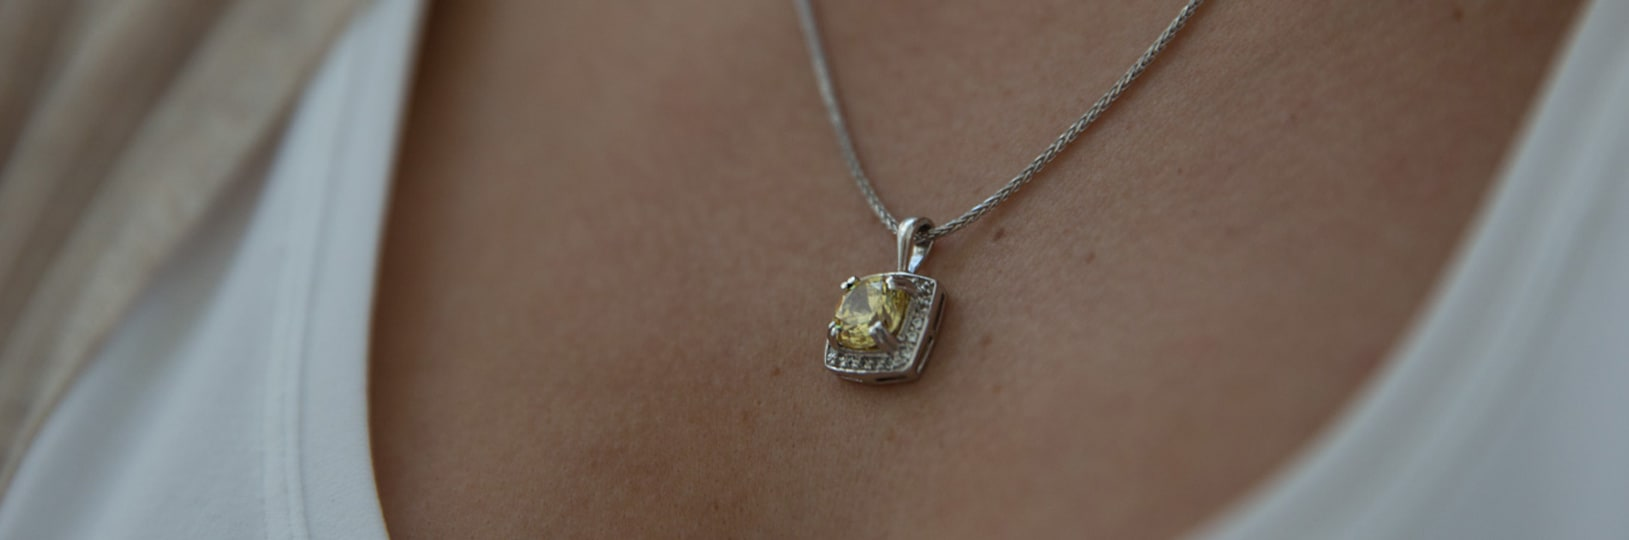 An eye-catching pendant necklace with a canary yellow stone